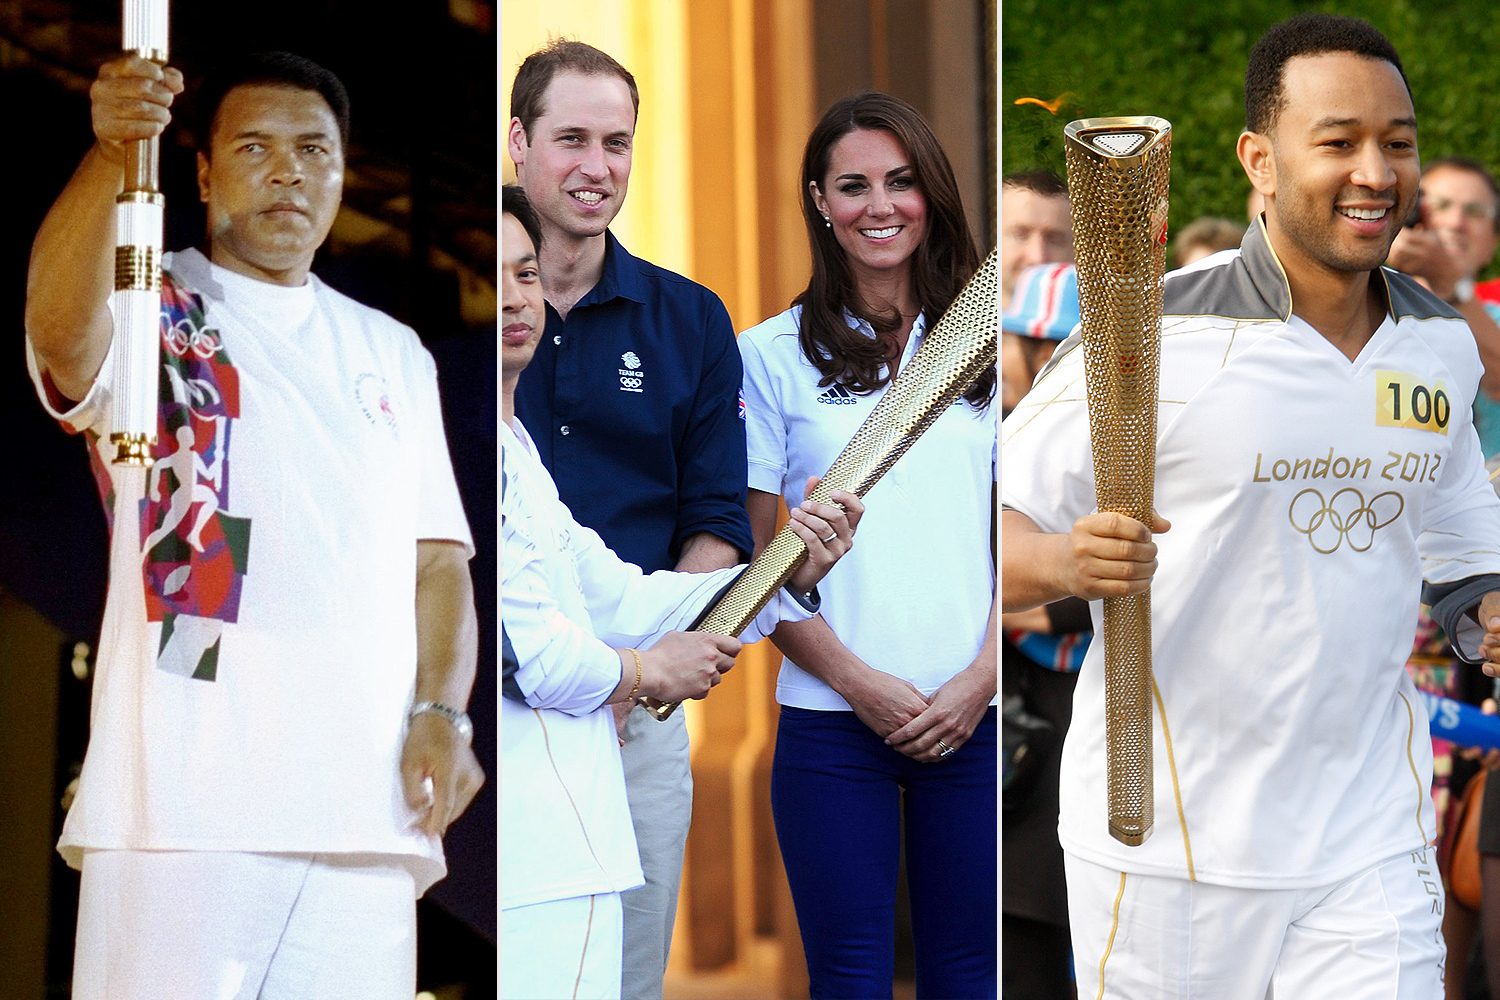 Celebrities Olympic torch